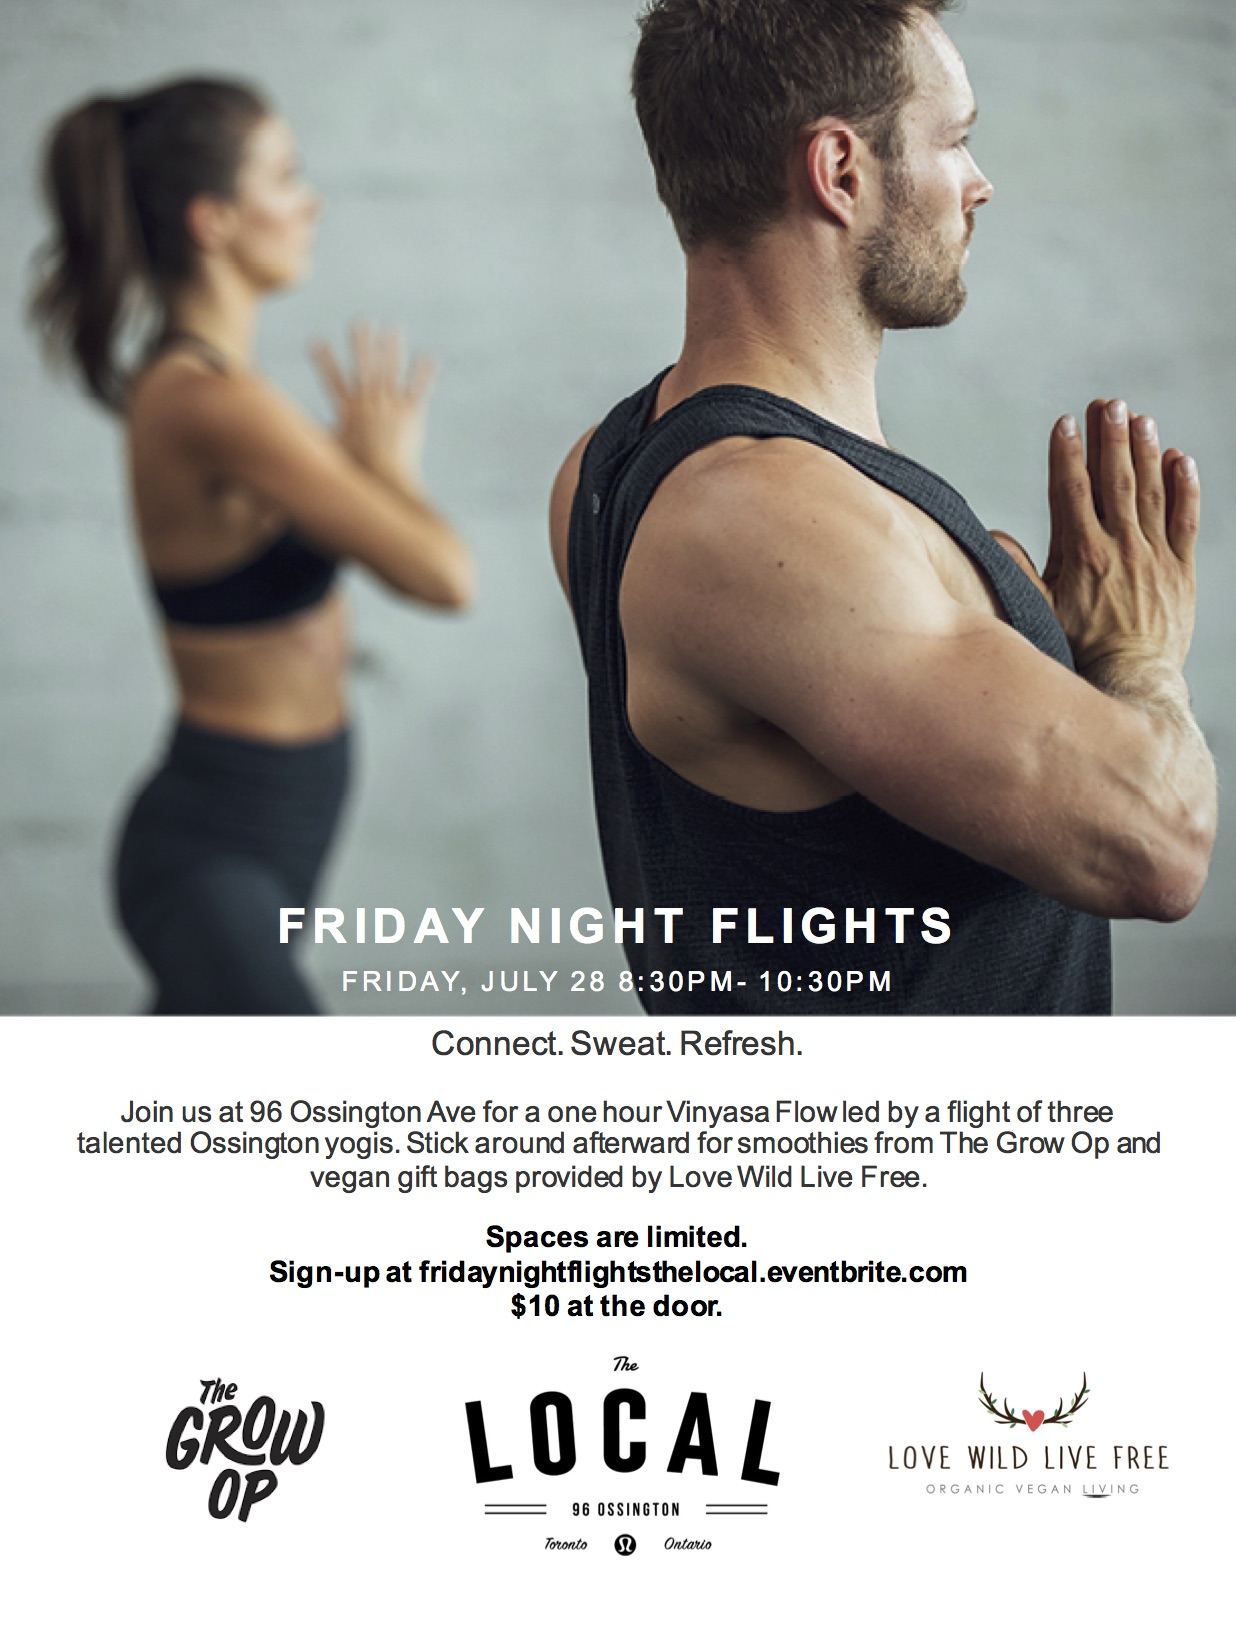 FRIDAY NIGHT FLIGHTS - Friday, July 28/17 at The Local Lululemon Men's Concept Space.The event will feature a one hour Vinyasa Flow led by a flight of three talented Ossington yoga instructors. All proceeds will benefit The New Leaf Yoga Foundation.To reserve your space click here.